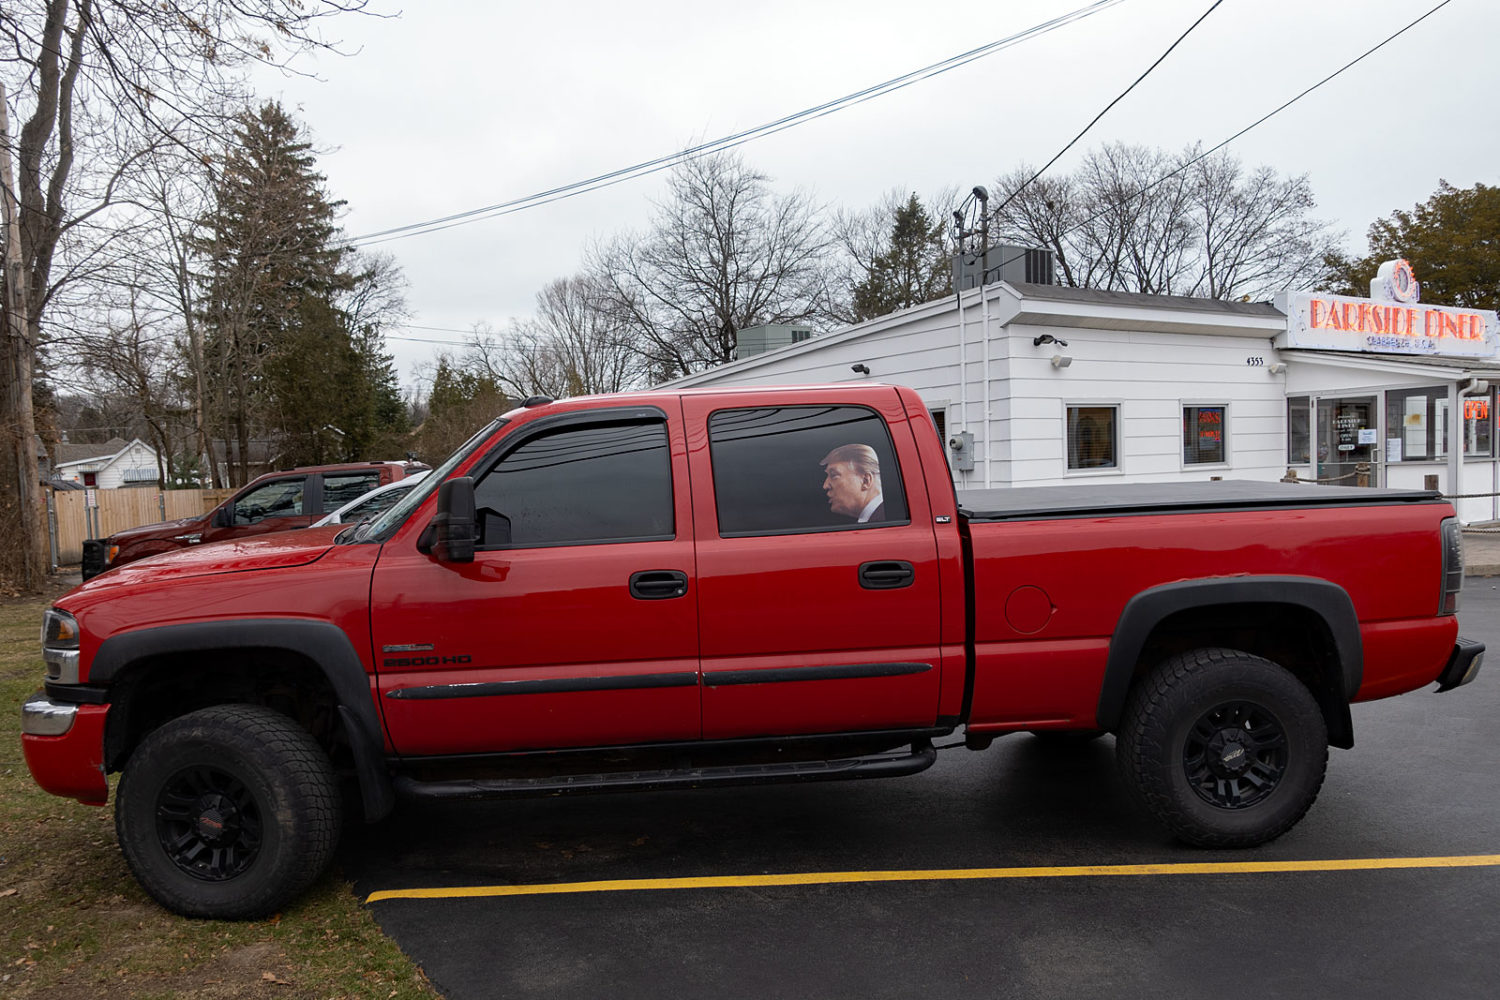 Picture of Trump in the back seat of a red pickup truck at Parkside Diner